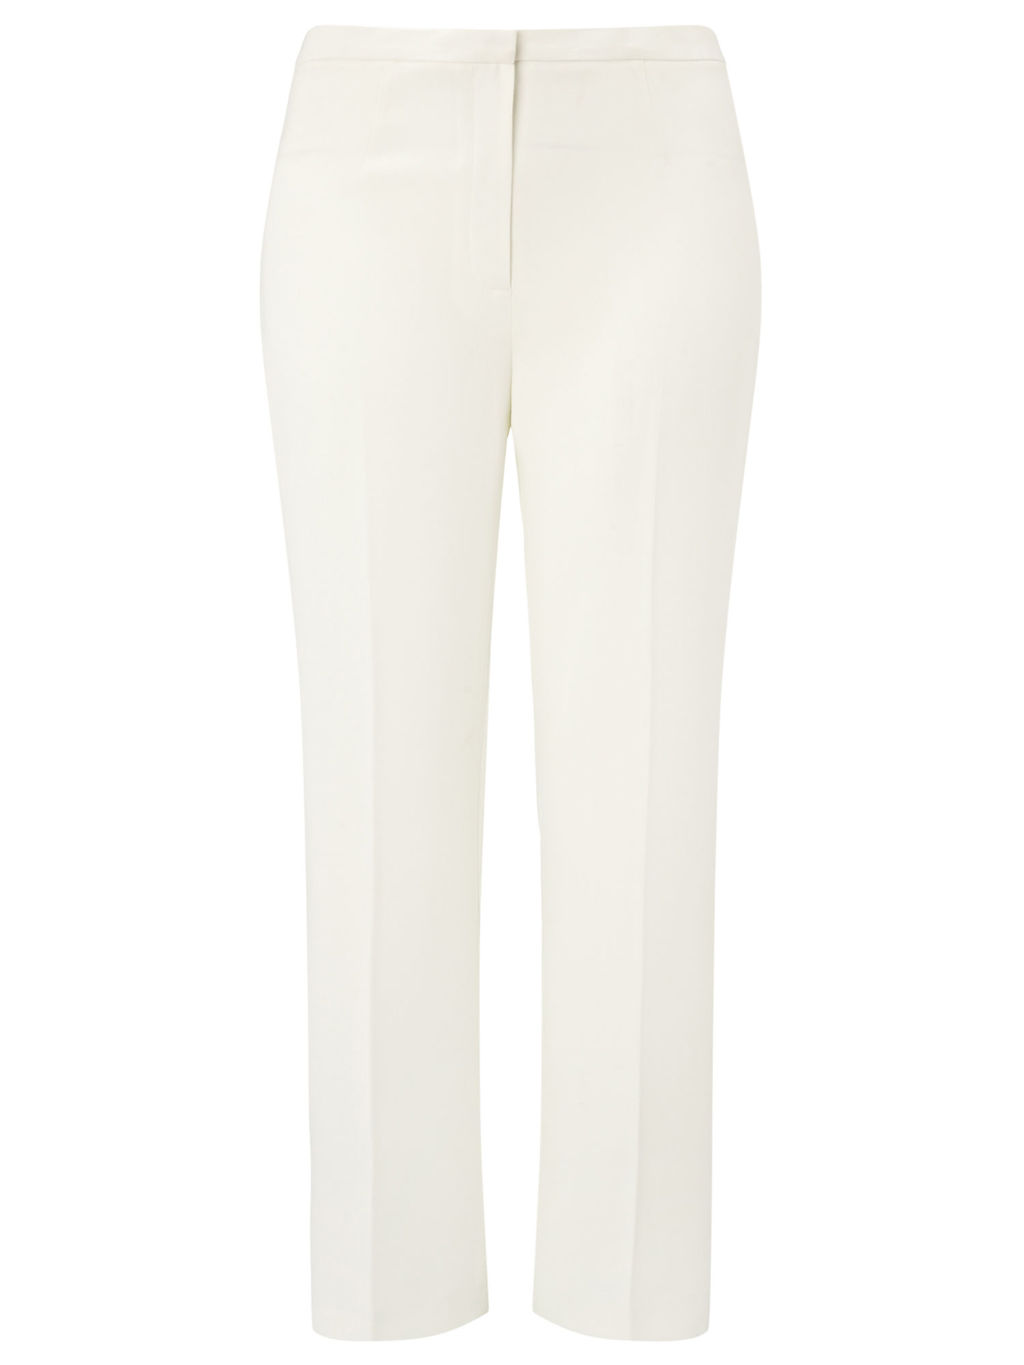 Straight Leg Trousers, Ivory - length: standard; pattern: plain; waist: mid/regular rise; predominant colour: white; fibres: polyester/polyamide - 100%; fit: slim leg; pattern type: fabric; texture group: other - light to midweight; style: standard; occasions: creative work; season: s/s 2016; wardrobe: basic